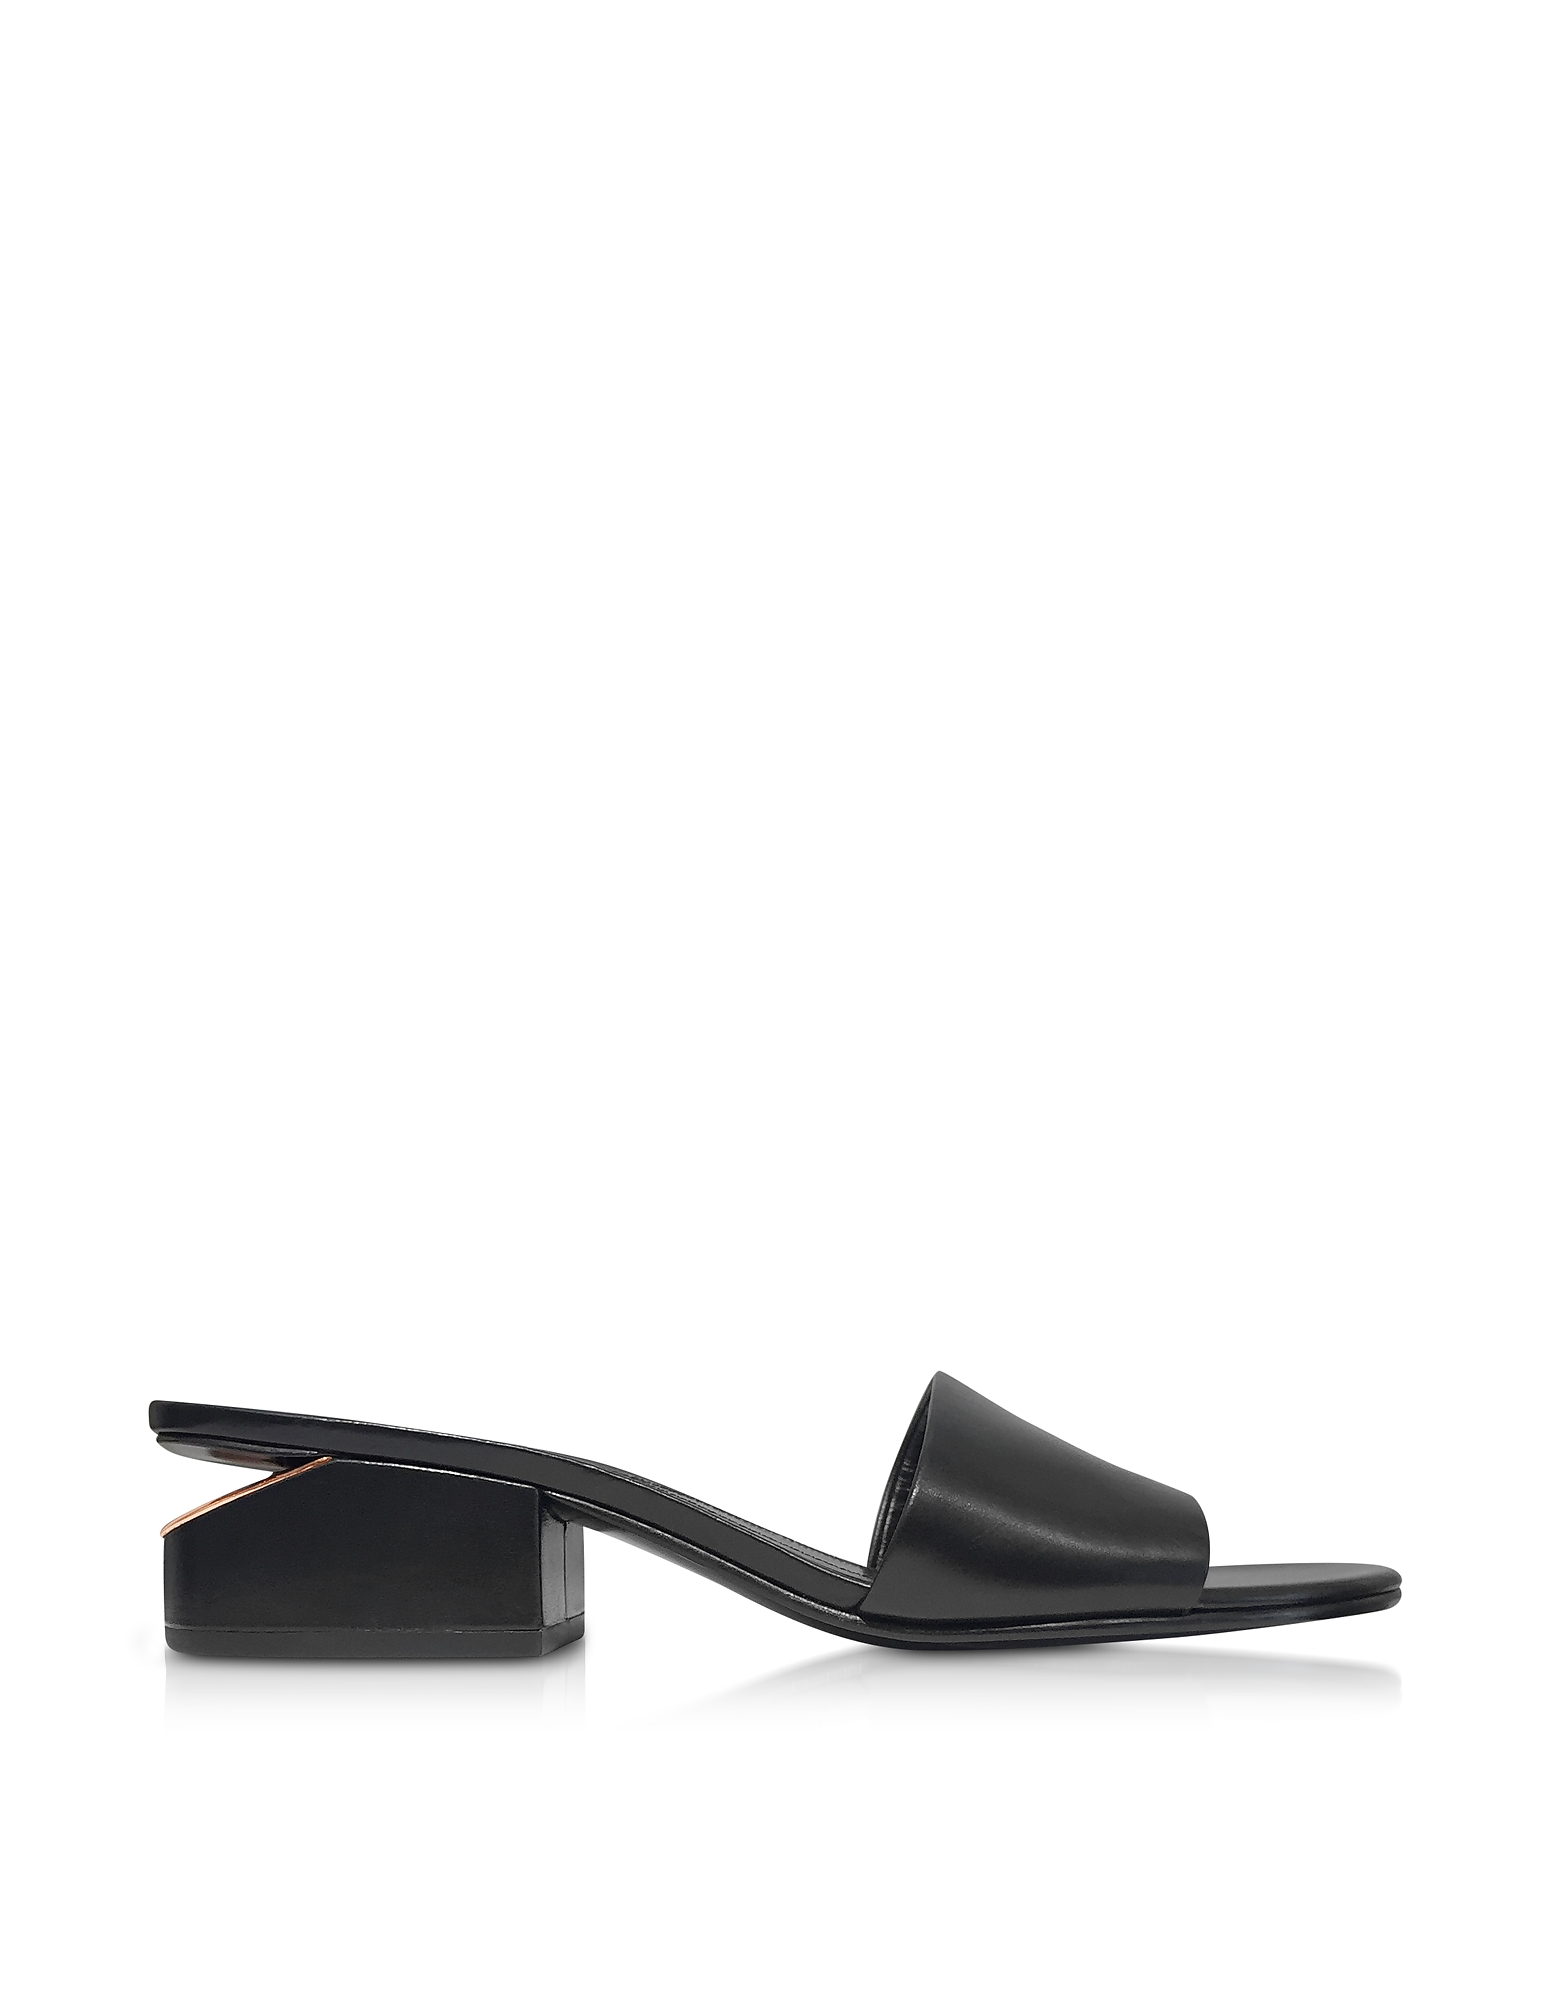 Alexander Wang Shoes, Lou Black Leather Slide Sandals w/Rose Gold Heel